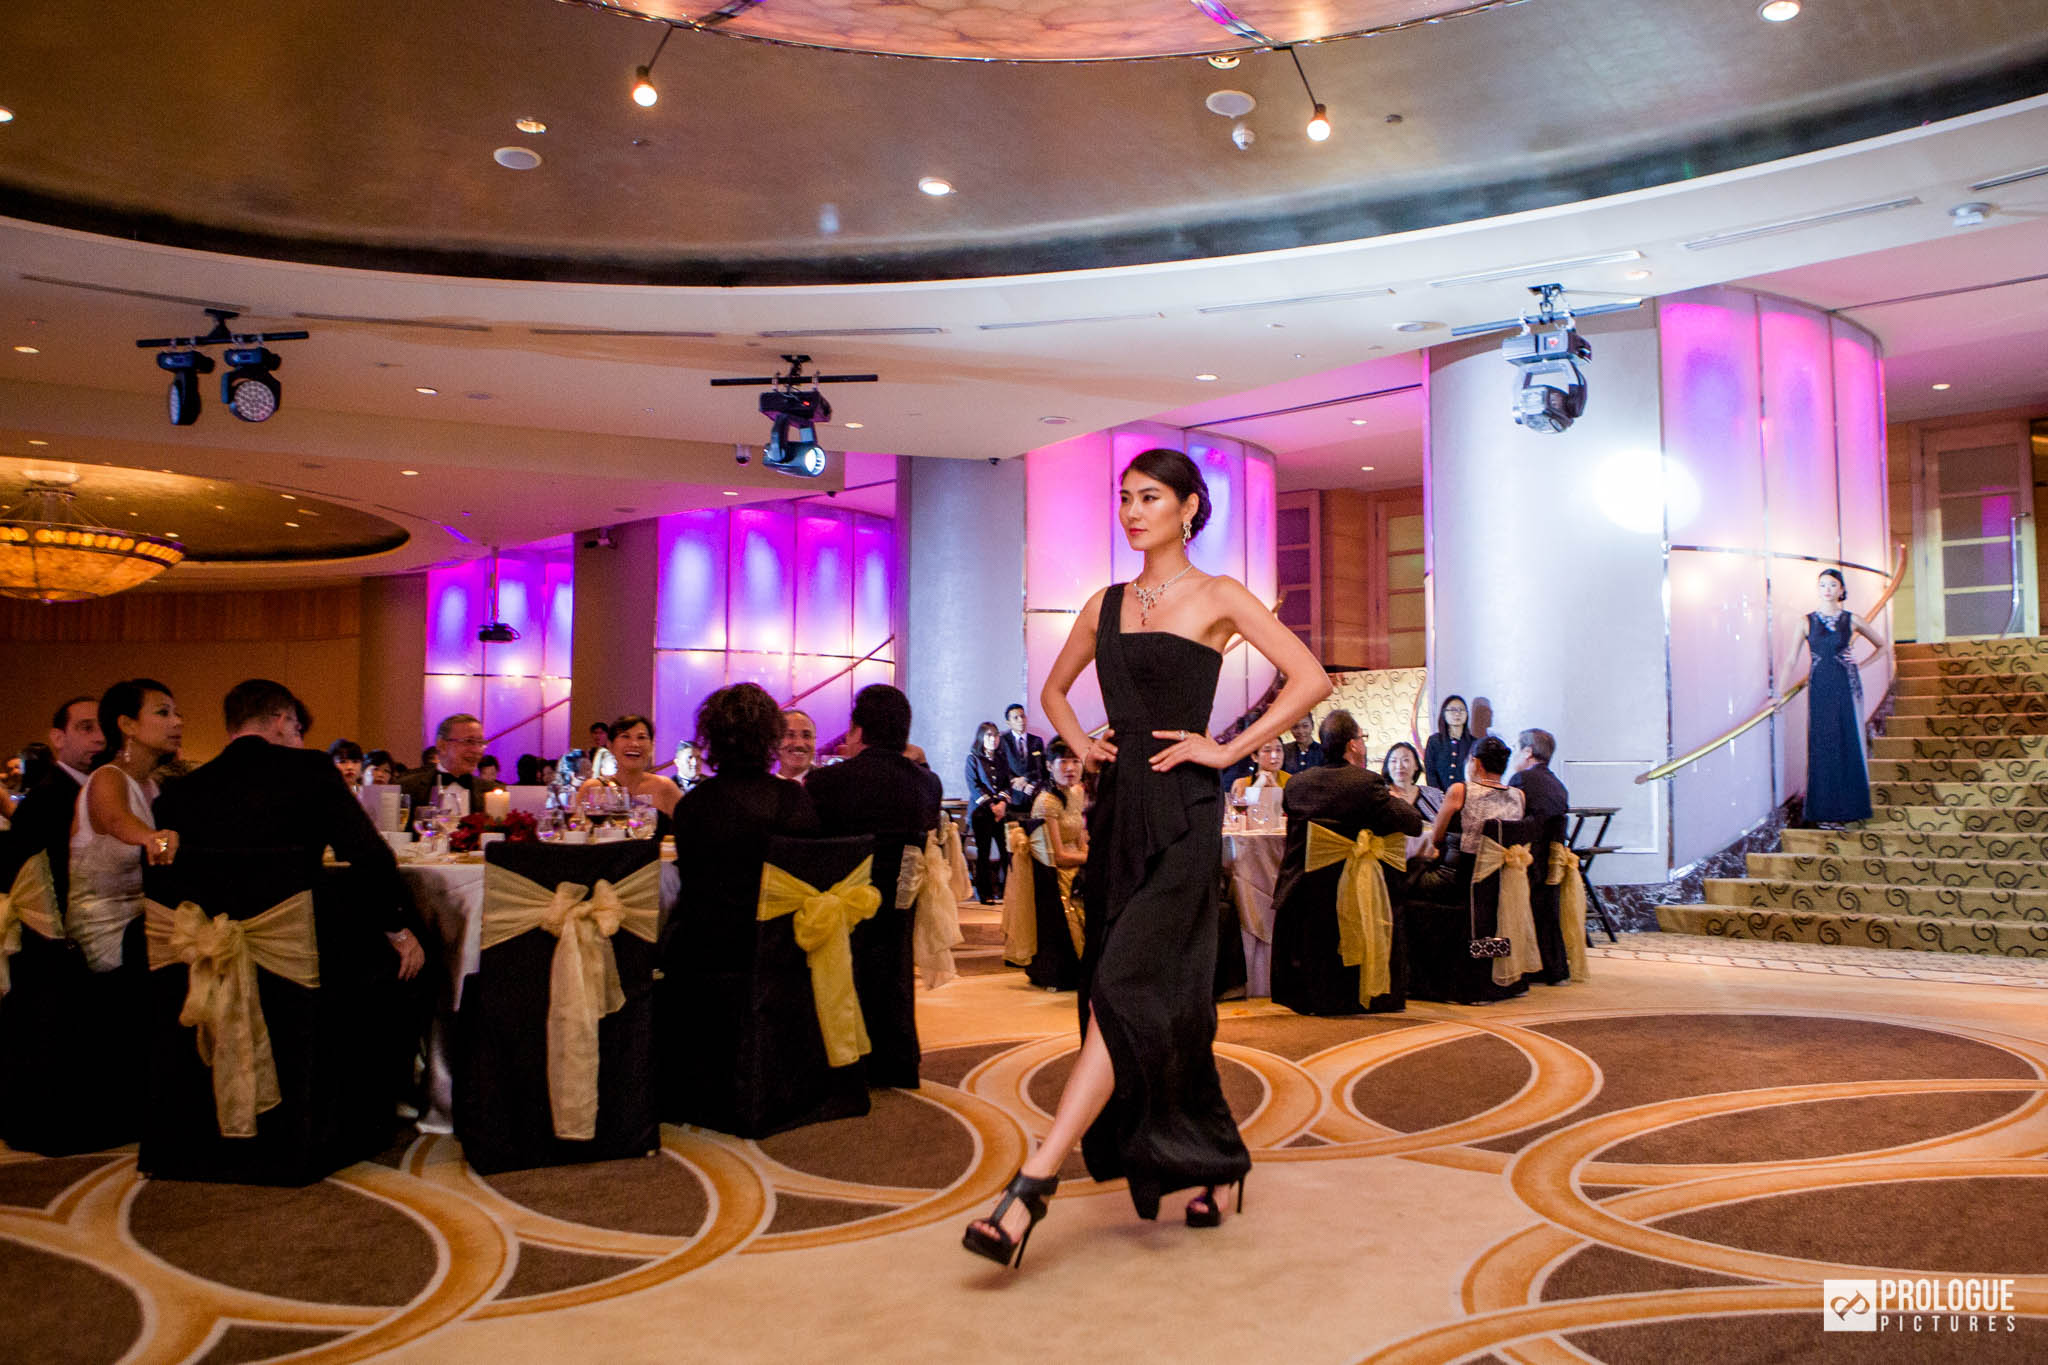 mouawad-125th-anniversary-event-photography-singapore-prologue-pictures-19